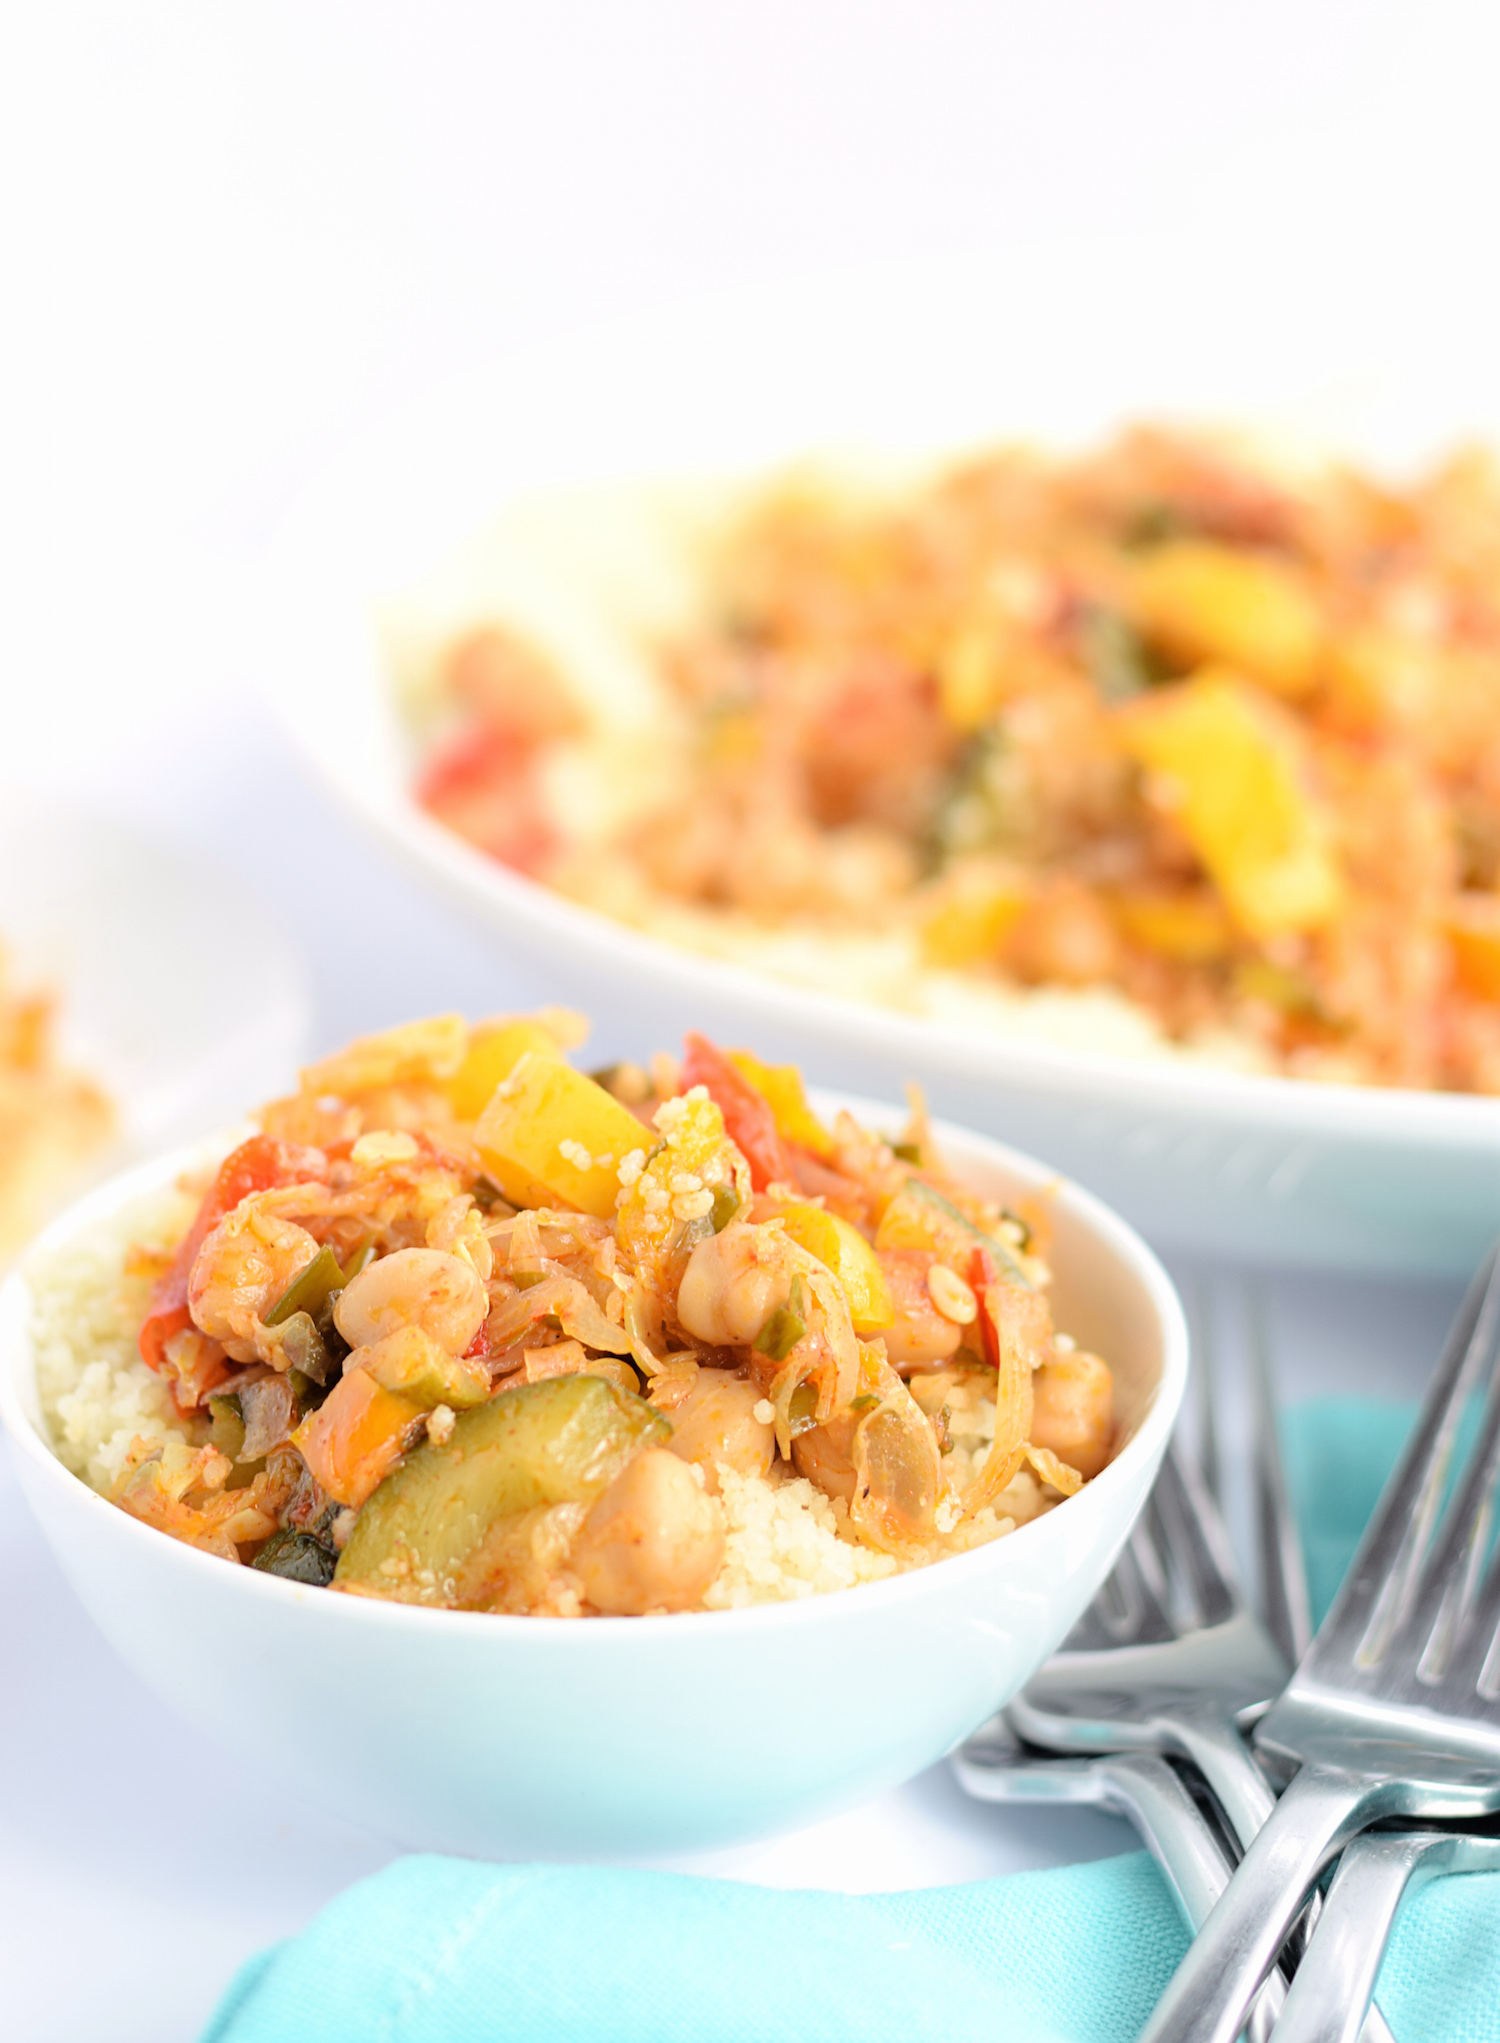 This Sautéed Chickpea and Vegetable Couscous is packed with flavor and nutrients and makes the perfect lunch or dinner. So addictive!   trufflesandtrends.com